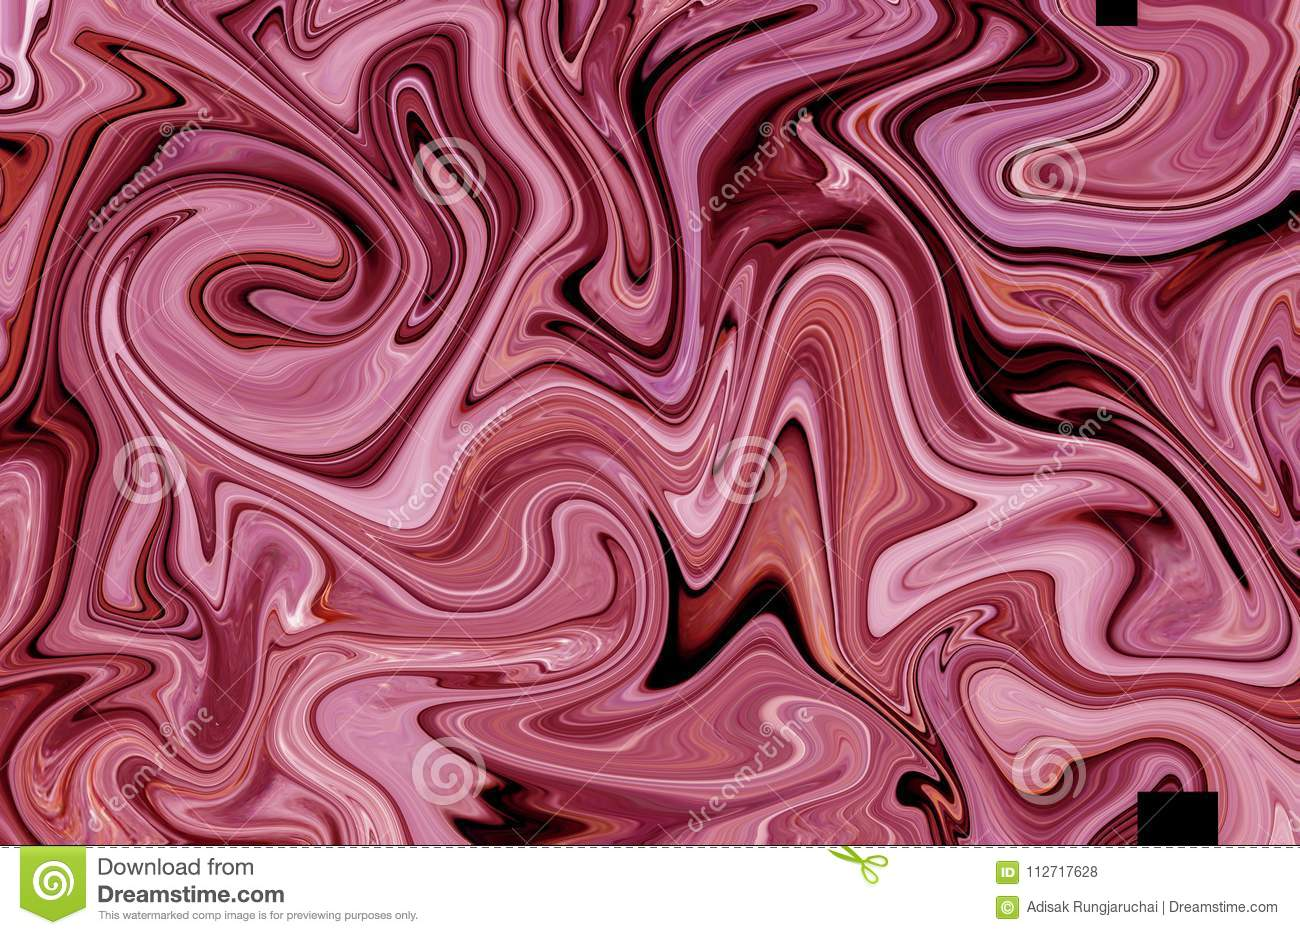 Fantastic Wallpaper Marble Colorful - colorful-marble-art-skin-tile-luxurious-wallpaper-ink-purple-pattern-blend-curves-abstract-112717628  Pic_483533.jpg